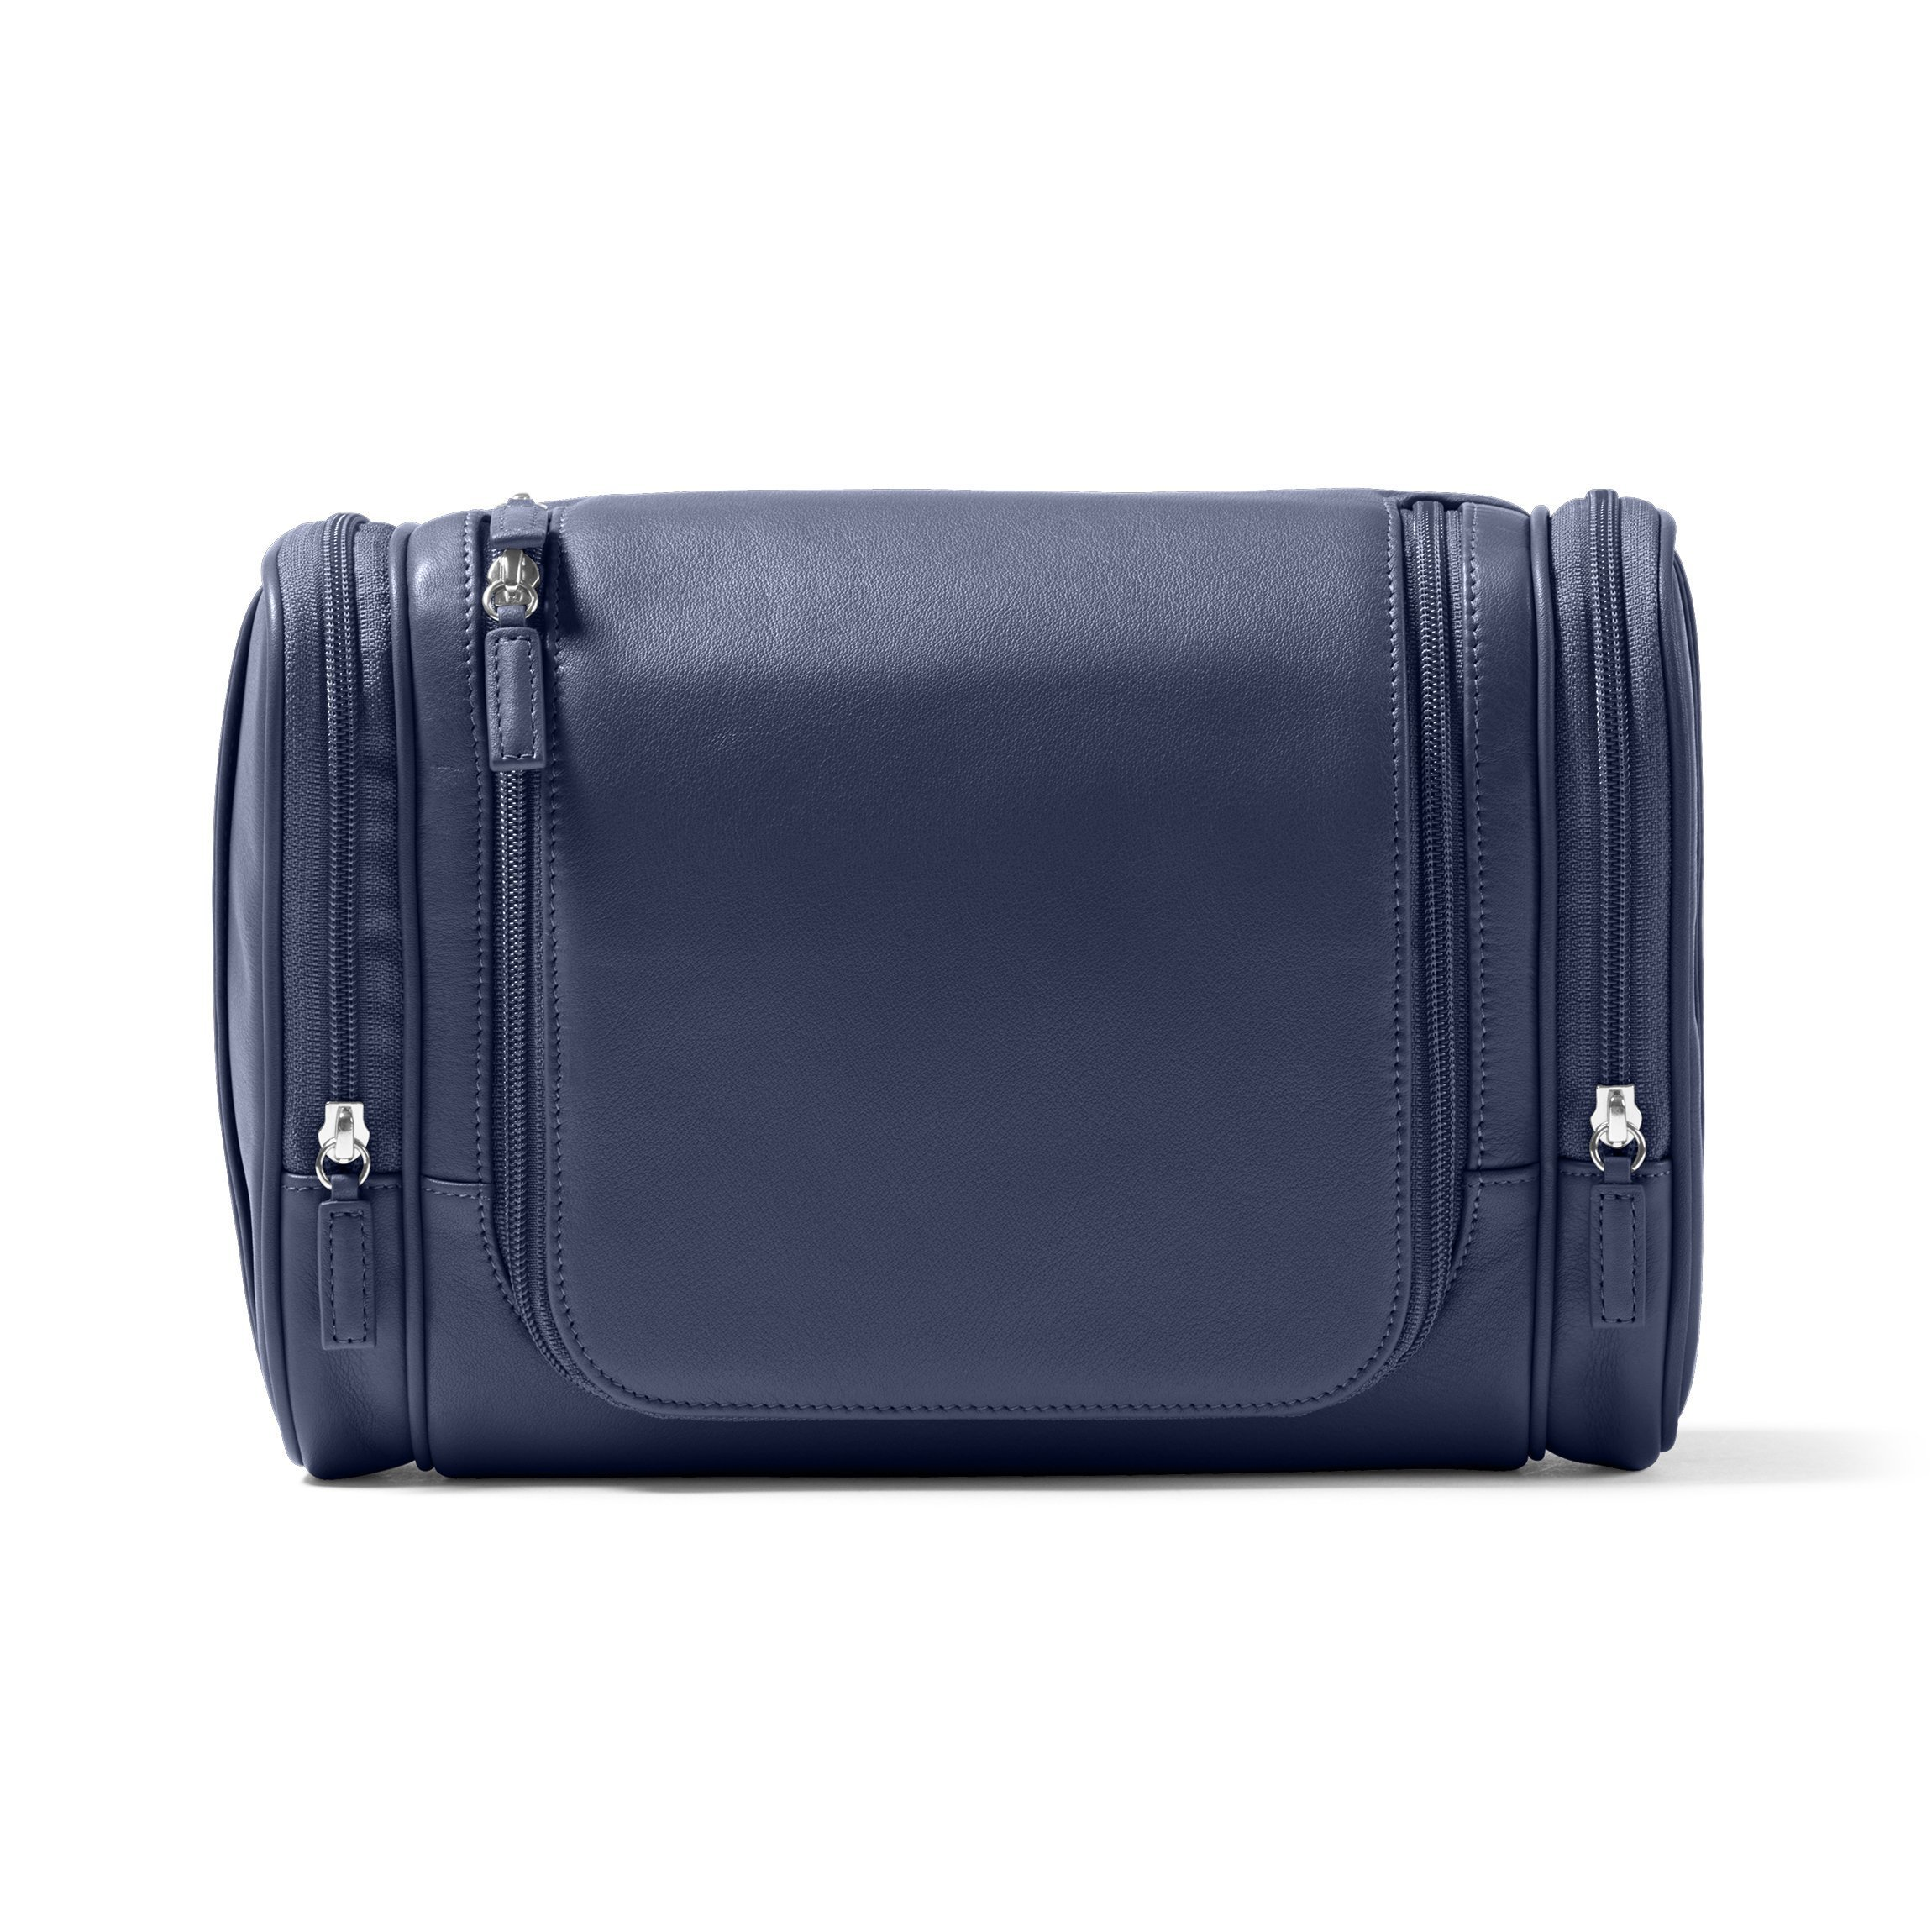 Leatherology Multi Pocket Hanging Toiletry - Full Grain Leather - Navy (blue)